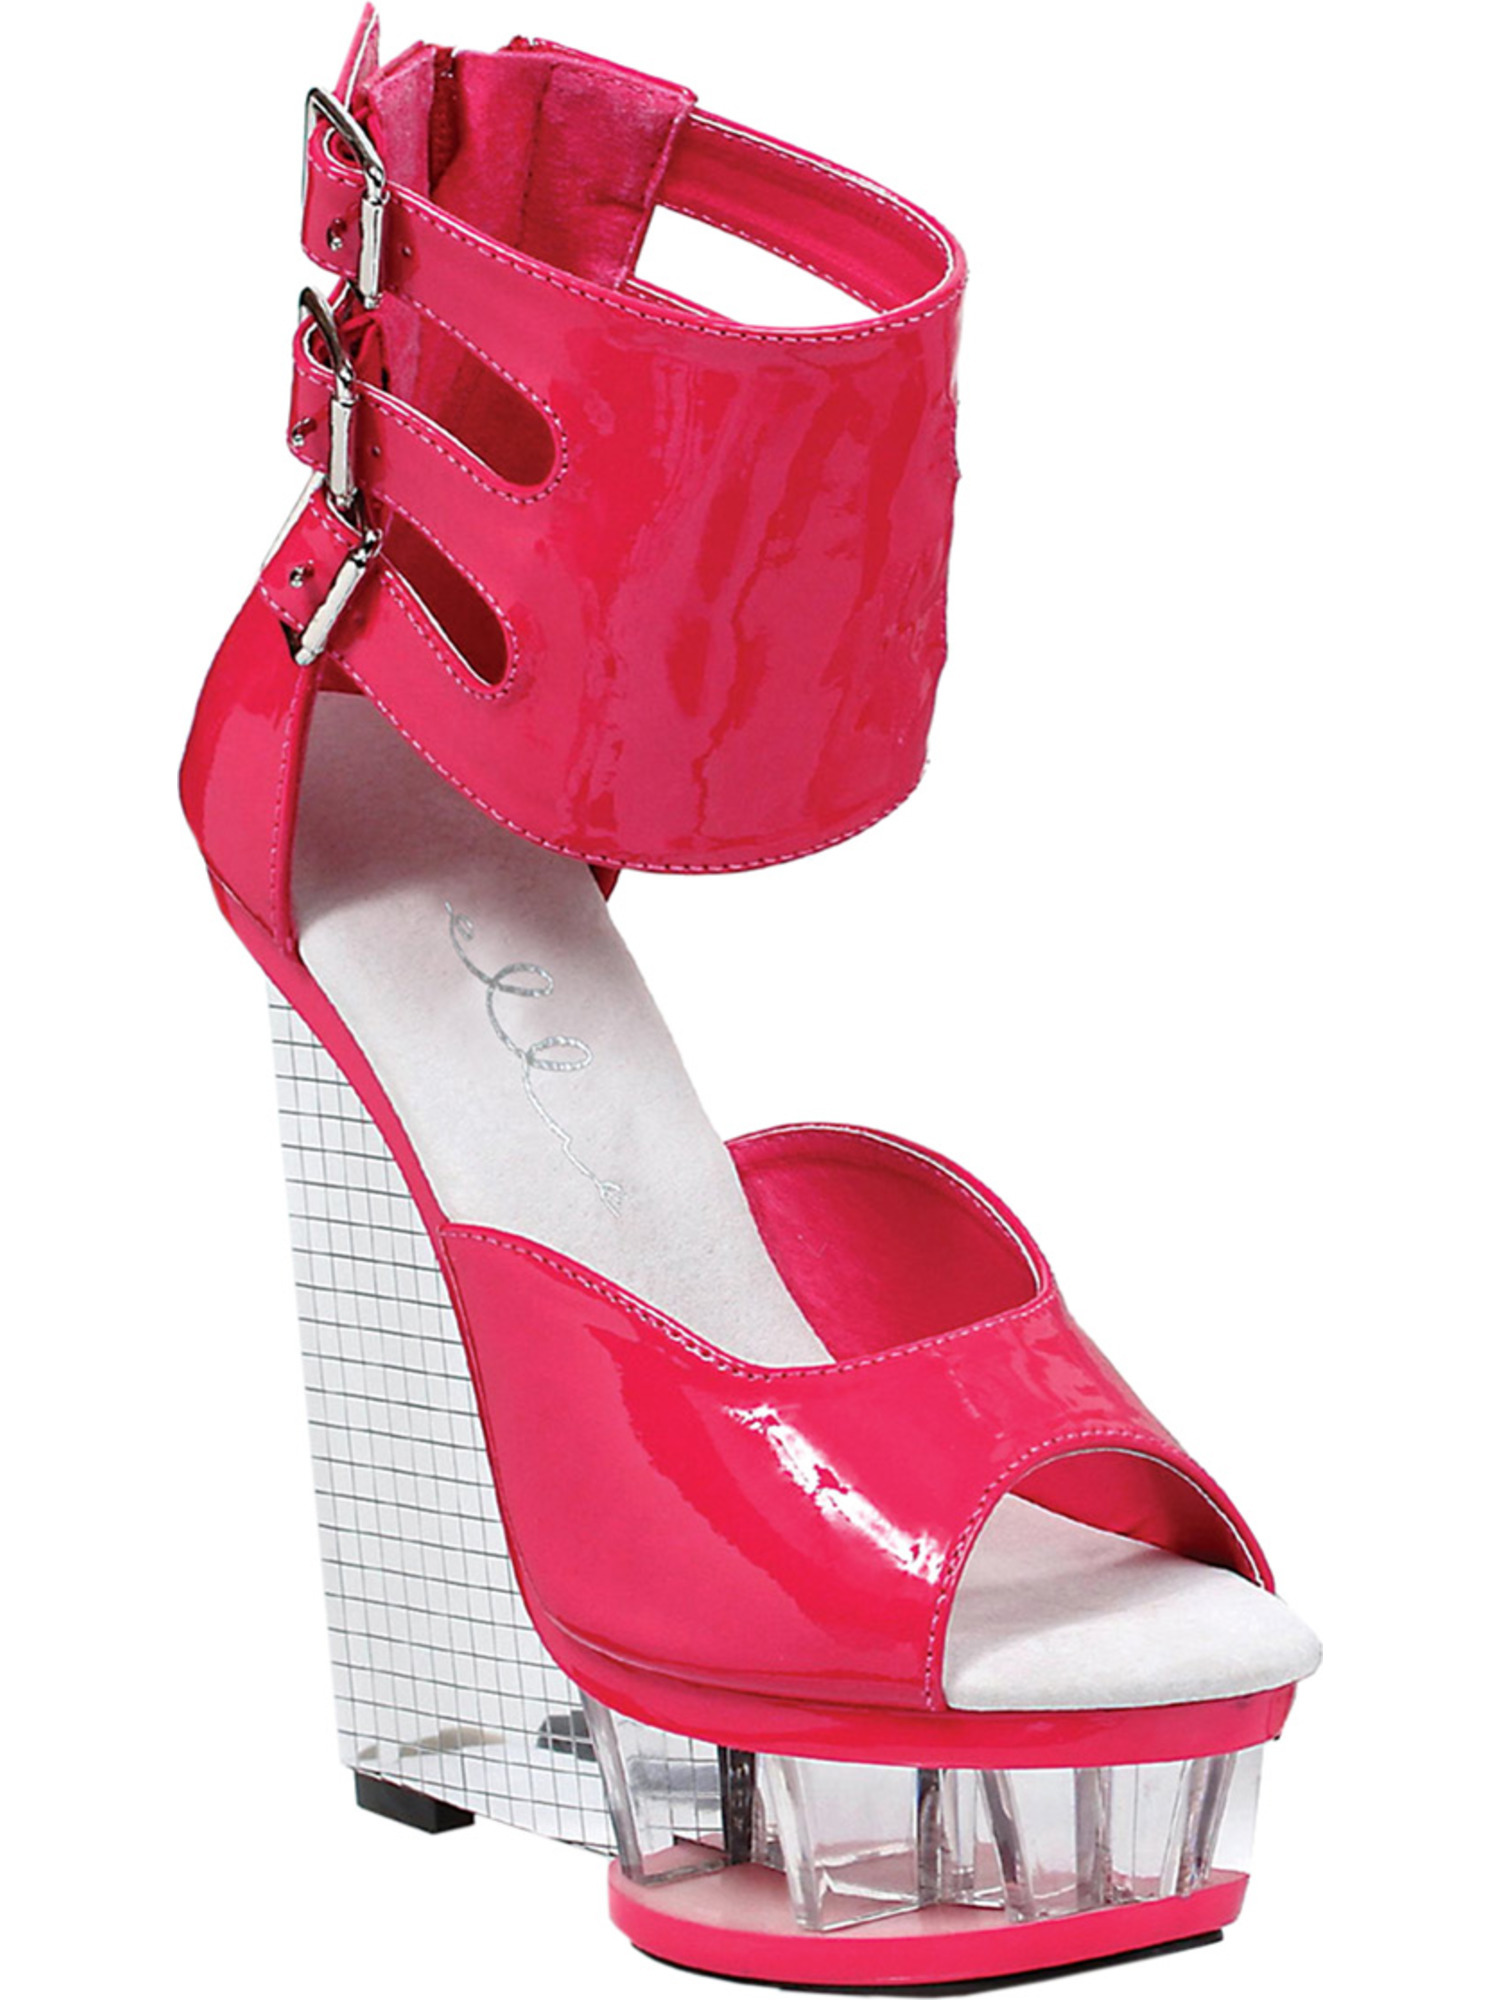 Shining Silver Mirror Ball 6 Inch  Wedge Heels with Hot Pink Patent Ankle Cuff